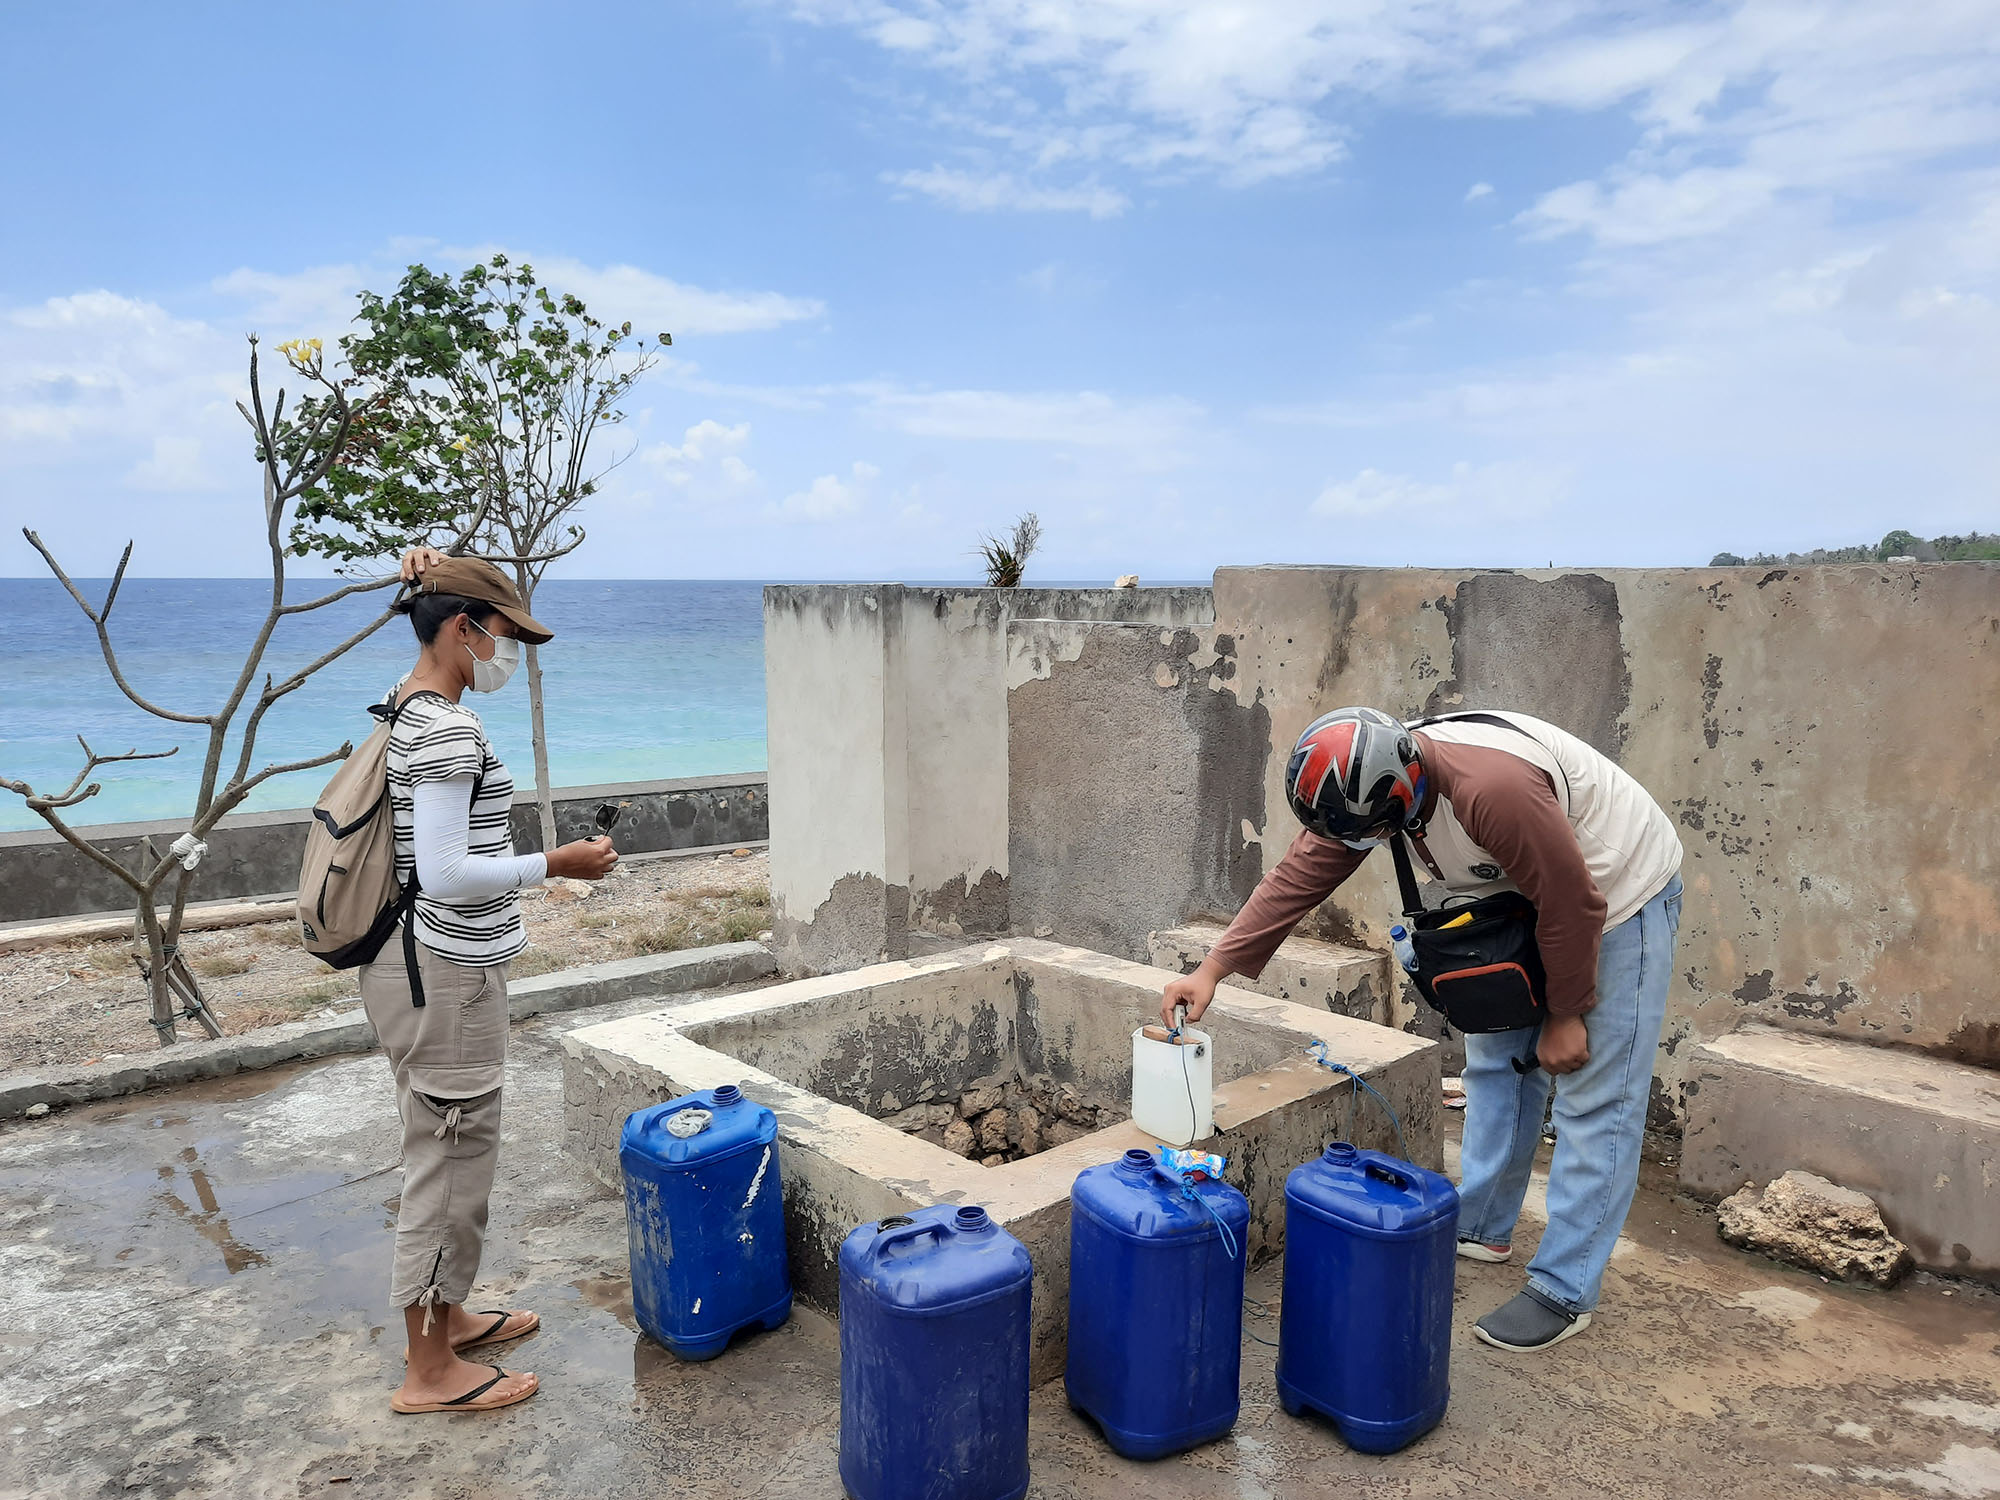 Waste for Water: Creating A Community-Led Water Desalination Business to Provide Clean Drinking Water